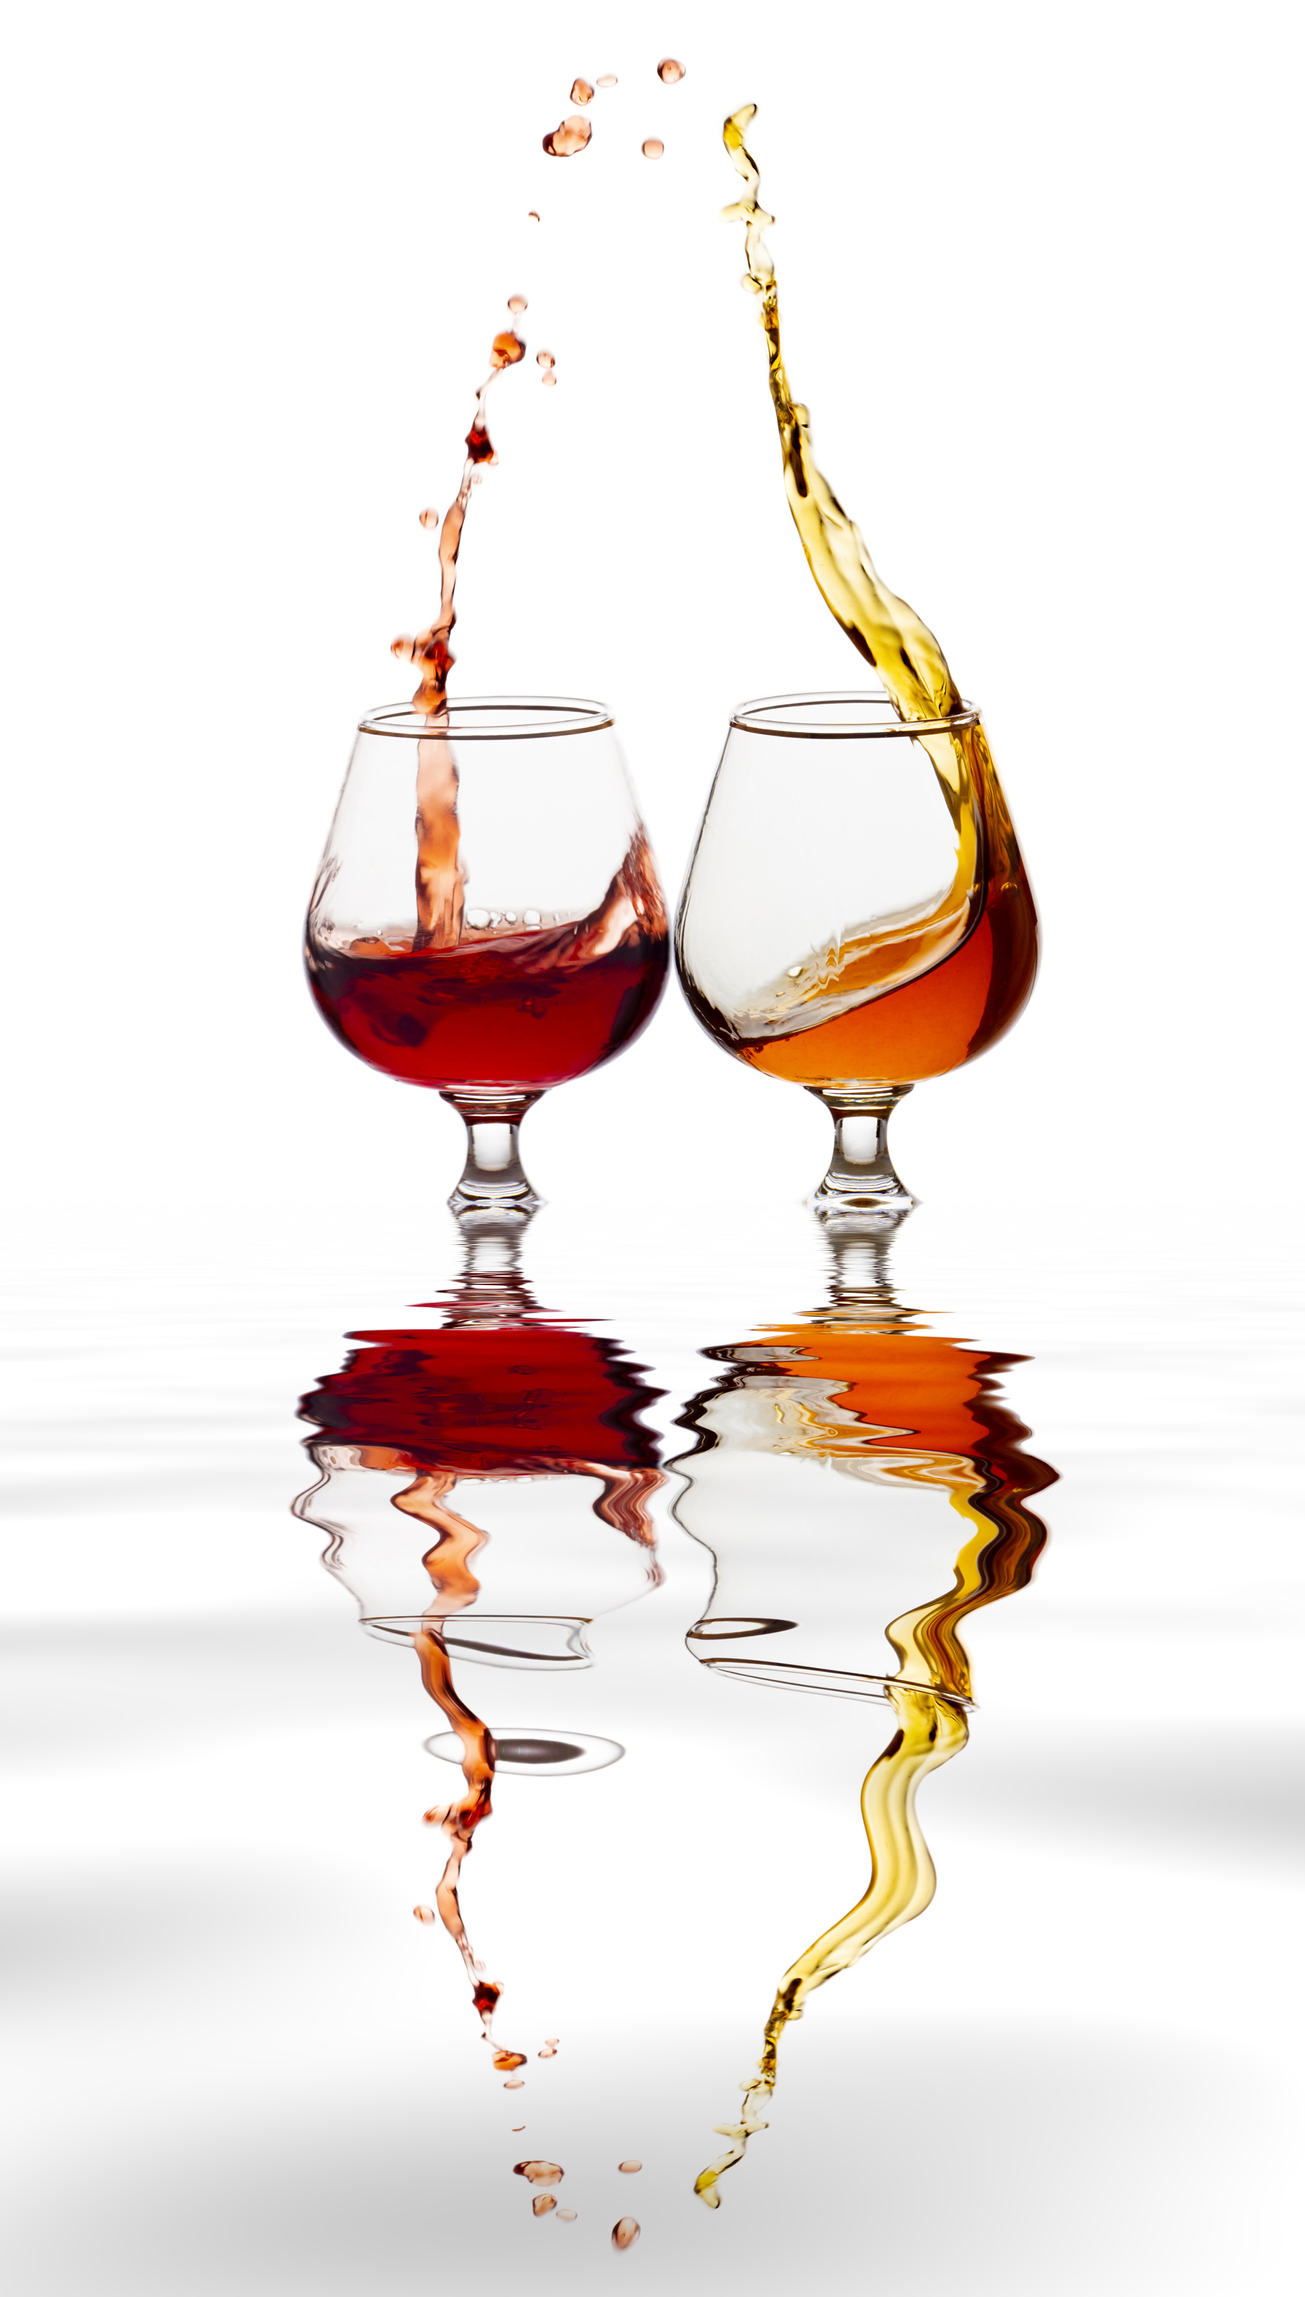 Raising a toast of liquor glasses on a white background reflected on a water surface.